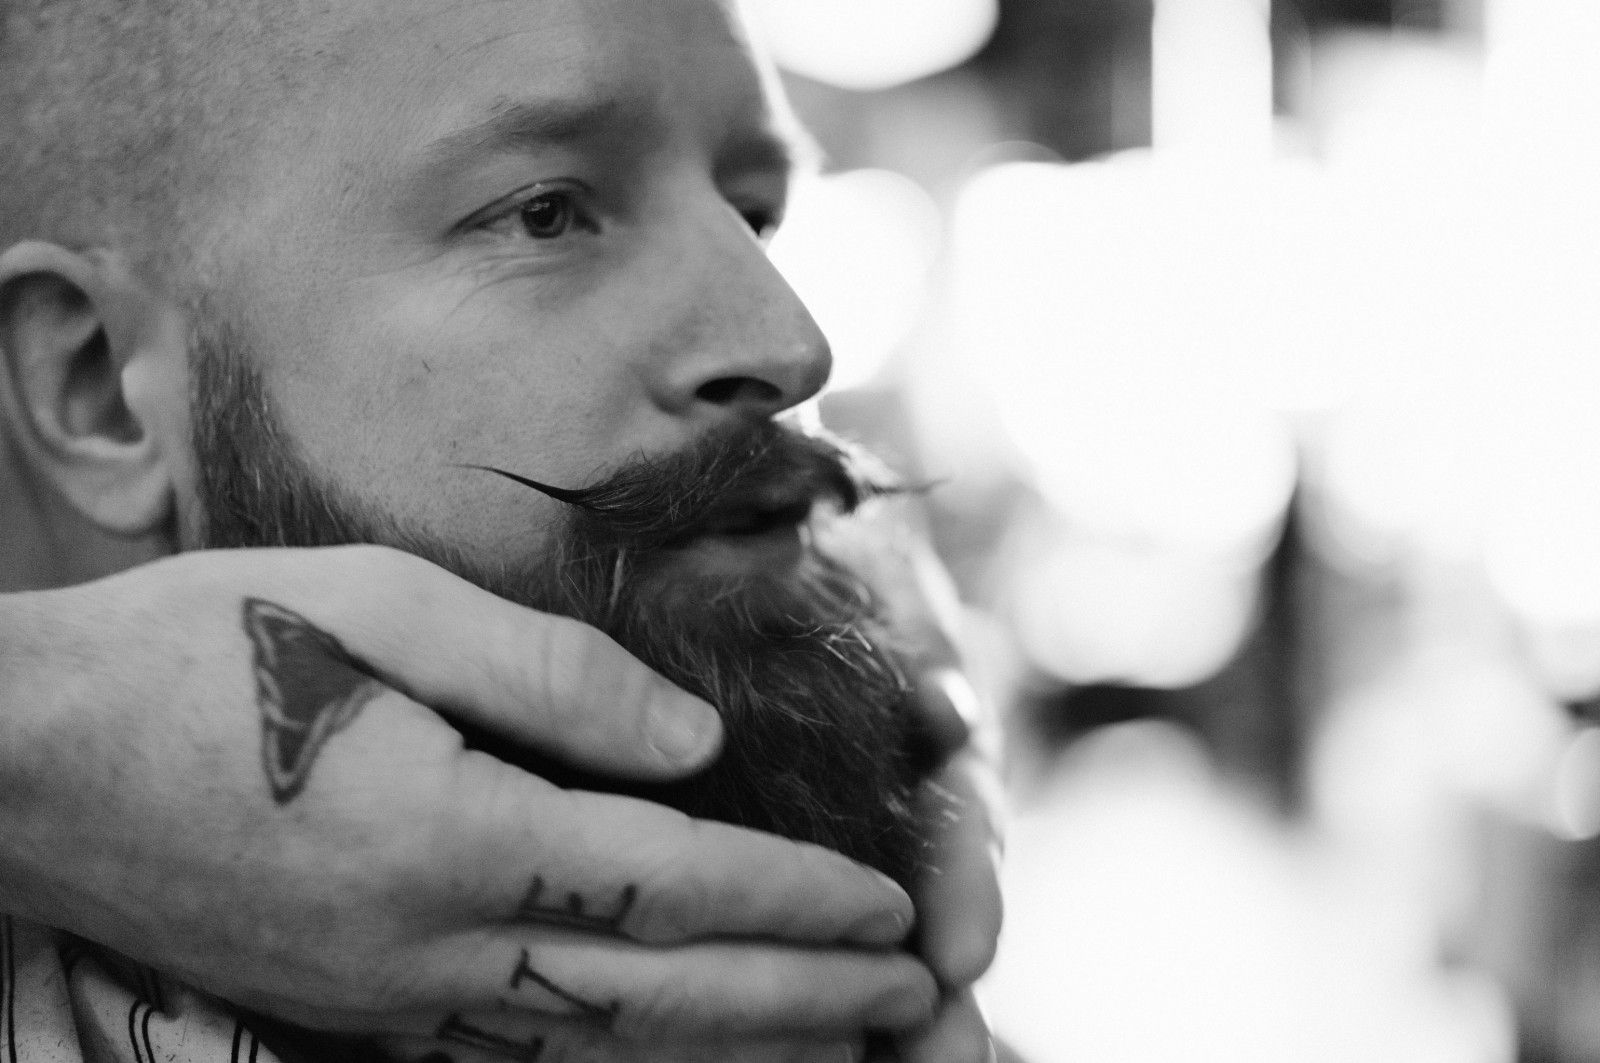 Rune getting his beard styled by Maus